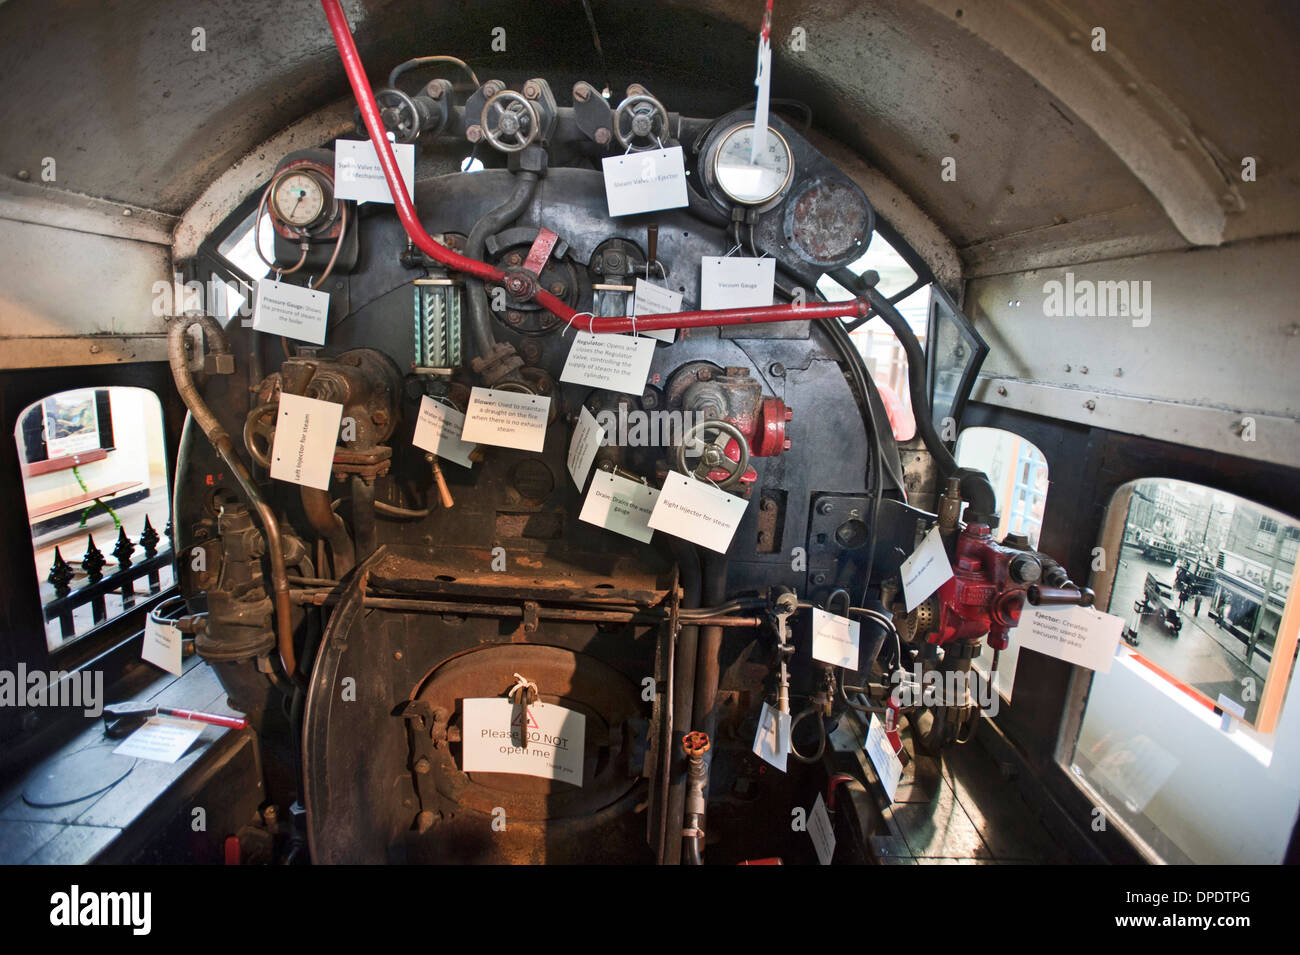 The Drivers Cab of a steam locomotive, with labels showing how to drive it. - Stock Image